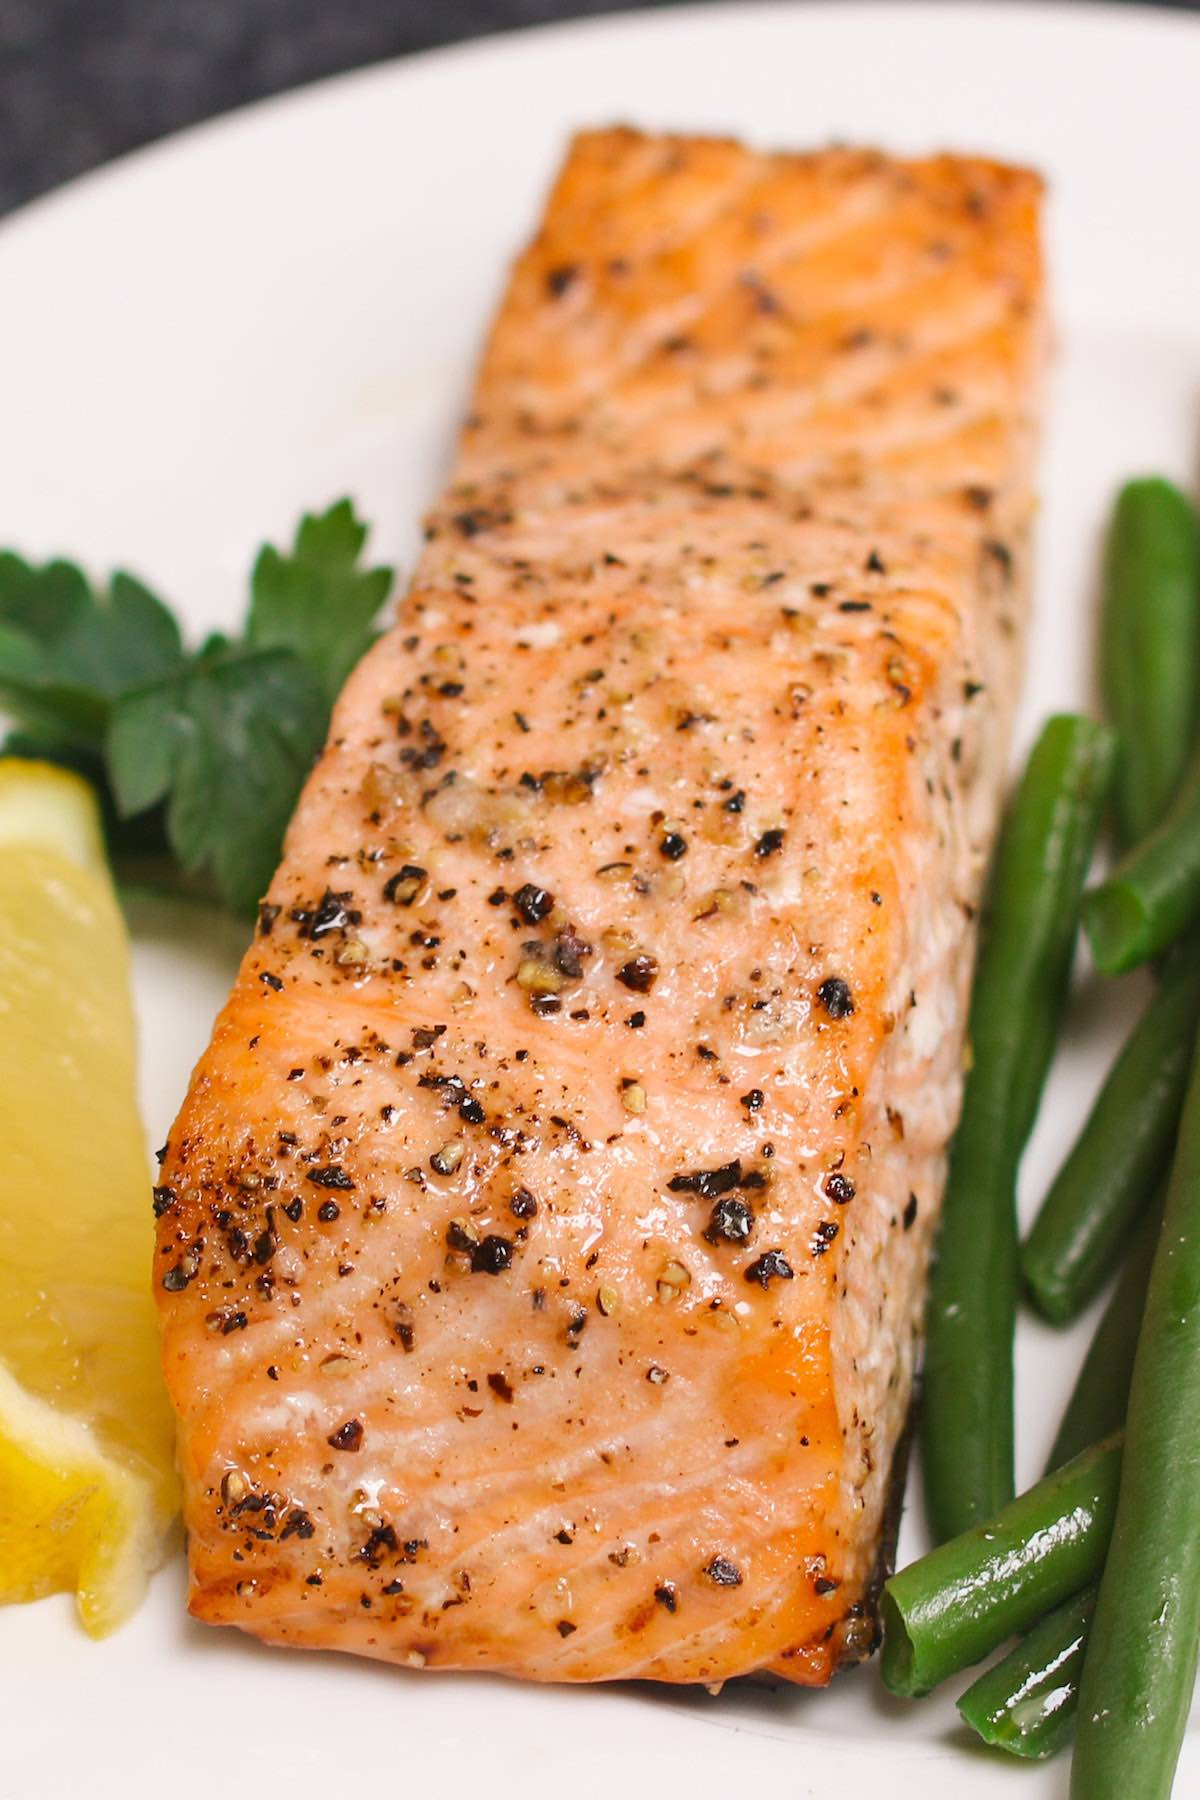 Center cut salmon fillet that's been baked to perfection featuring a golden exterior and served with green beans